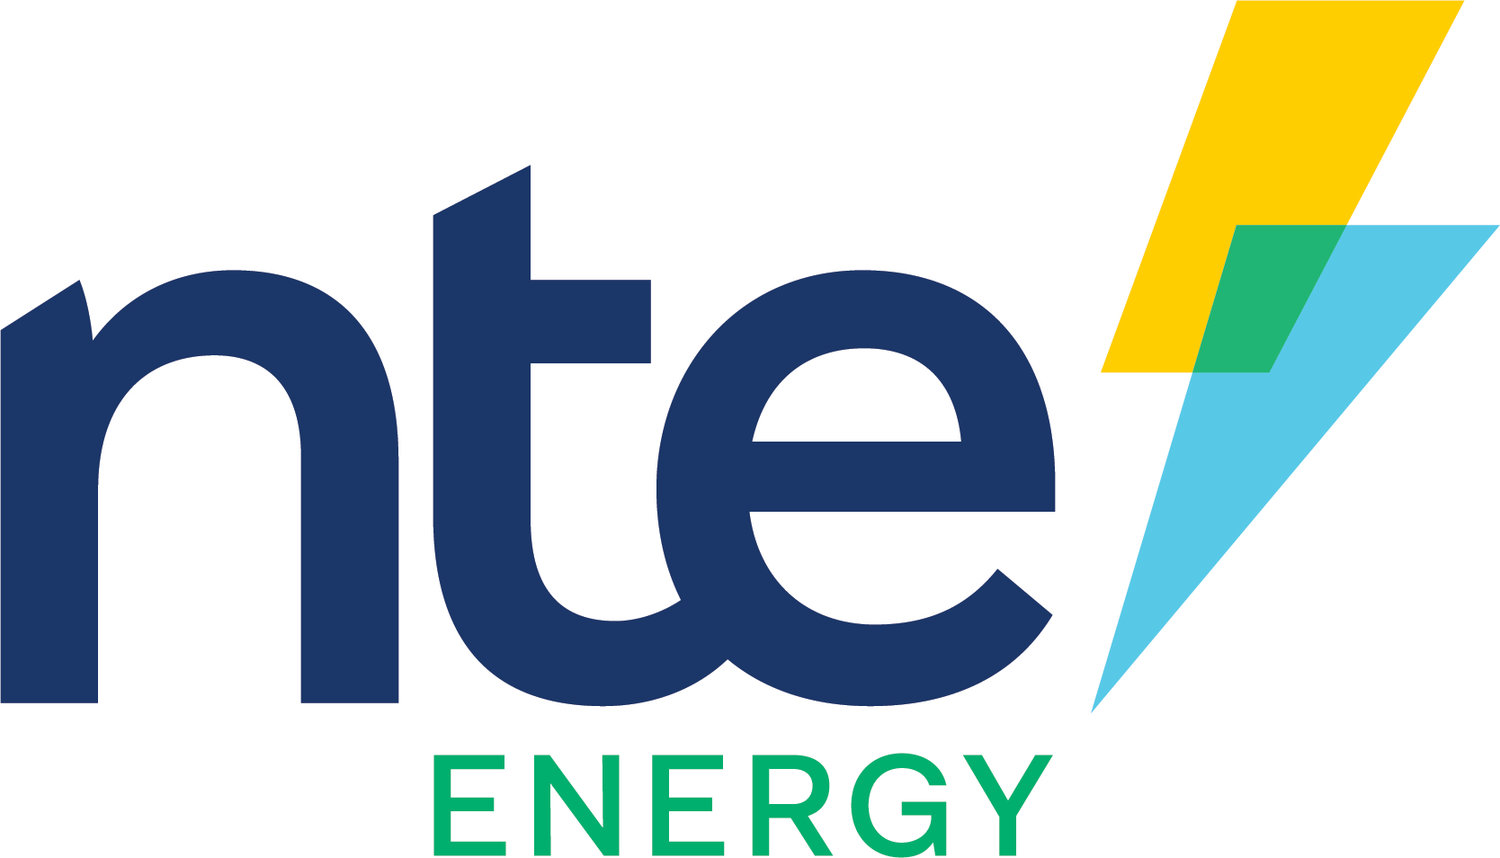 NTE Energy has unveiled a new logo as part of its 10th anniversary.